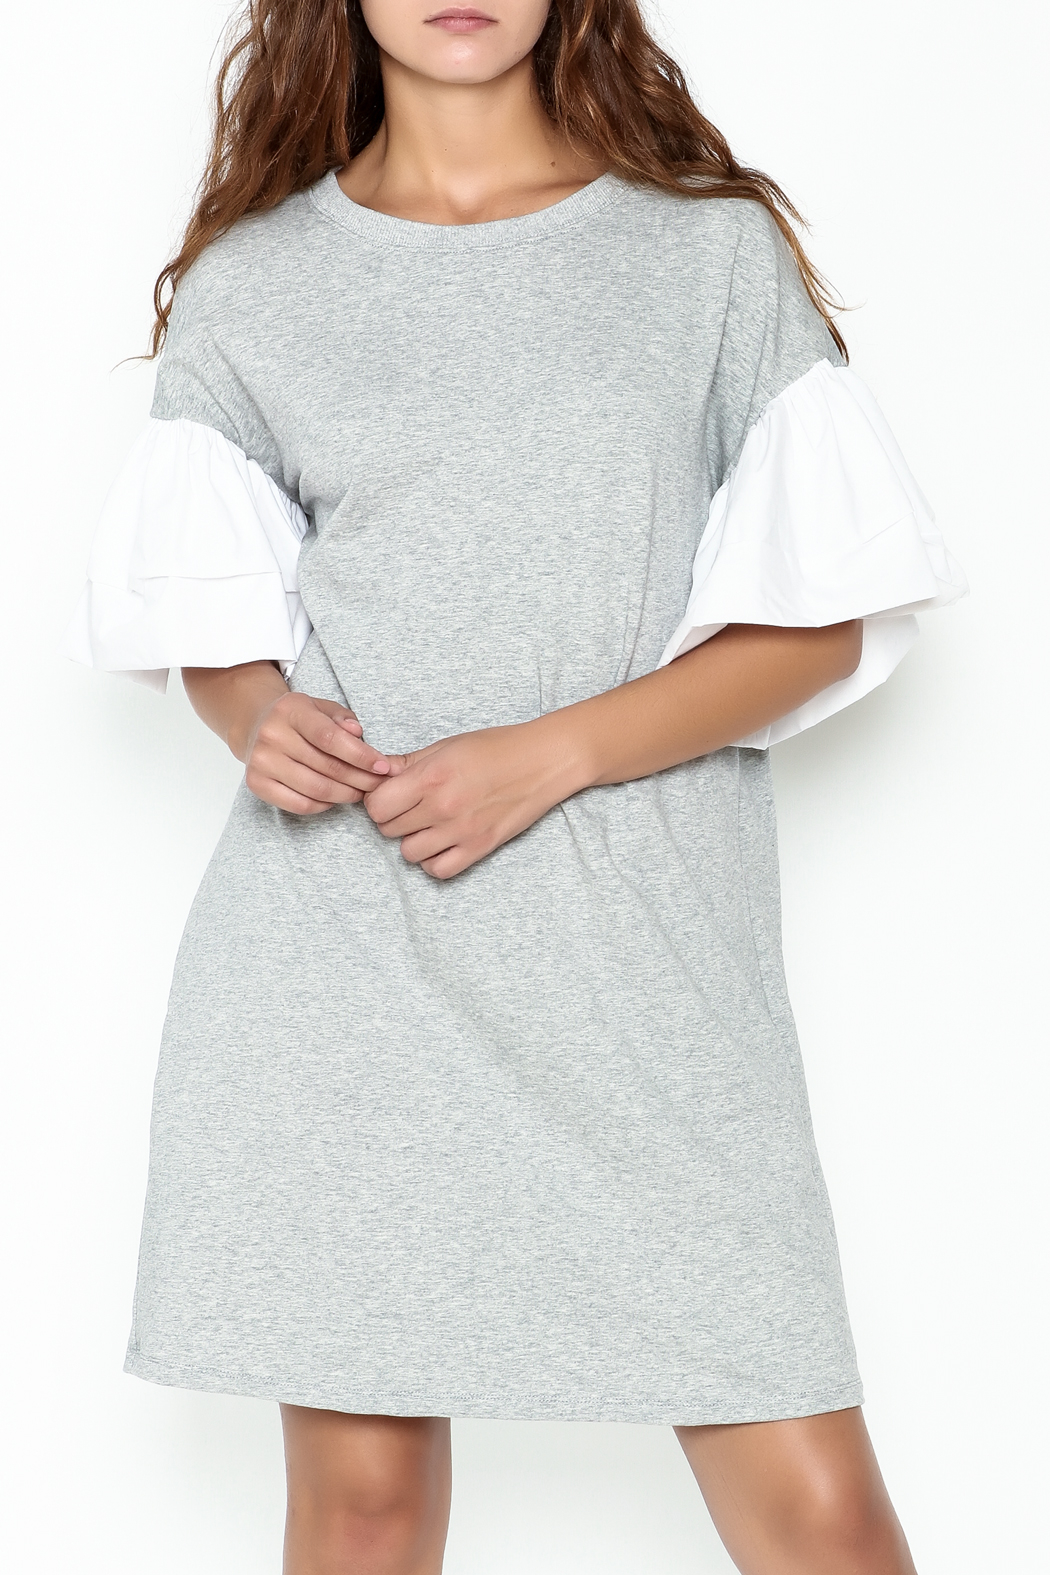 cq by cq Contrast Sleeve Shift Dress - Main Image